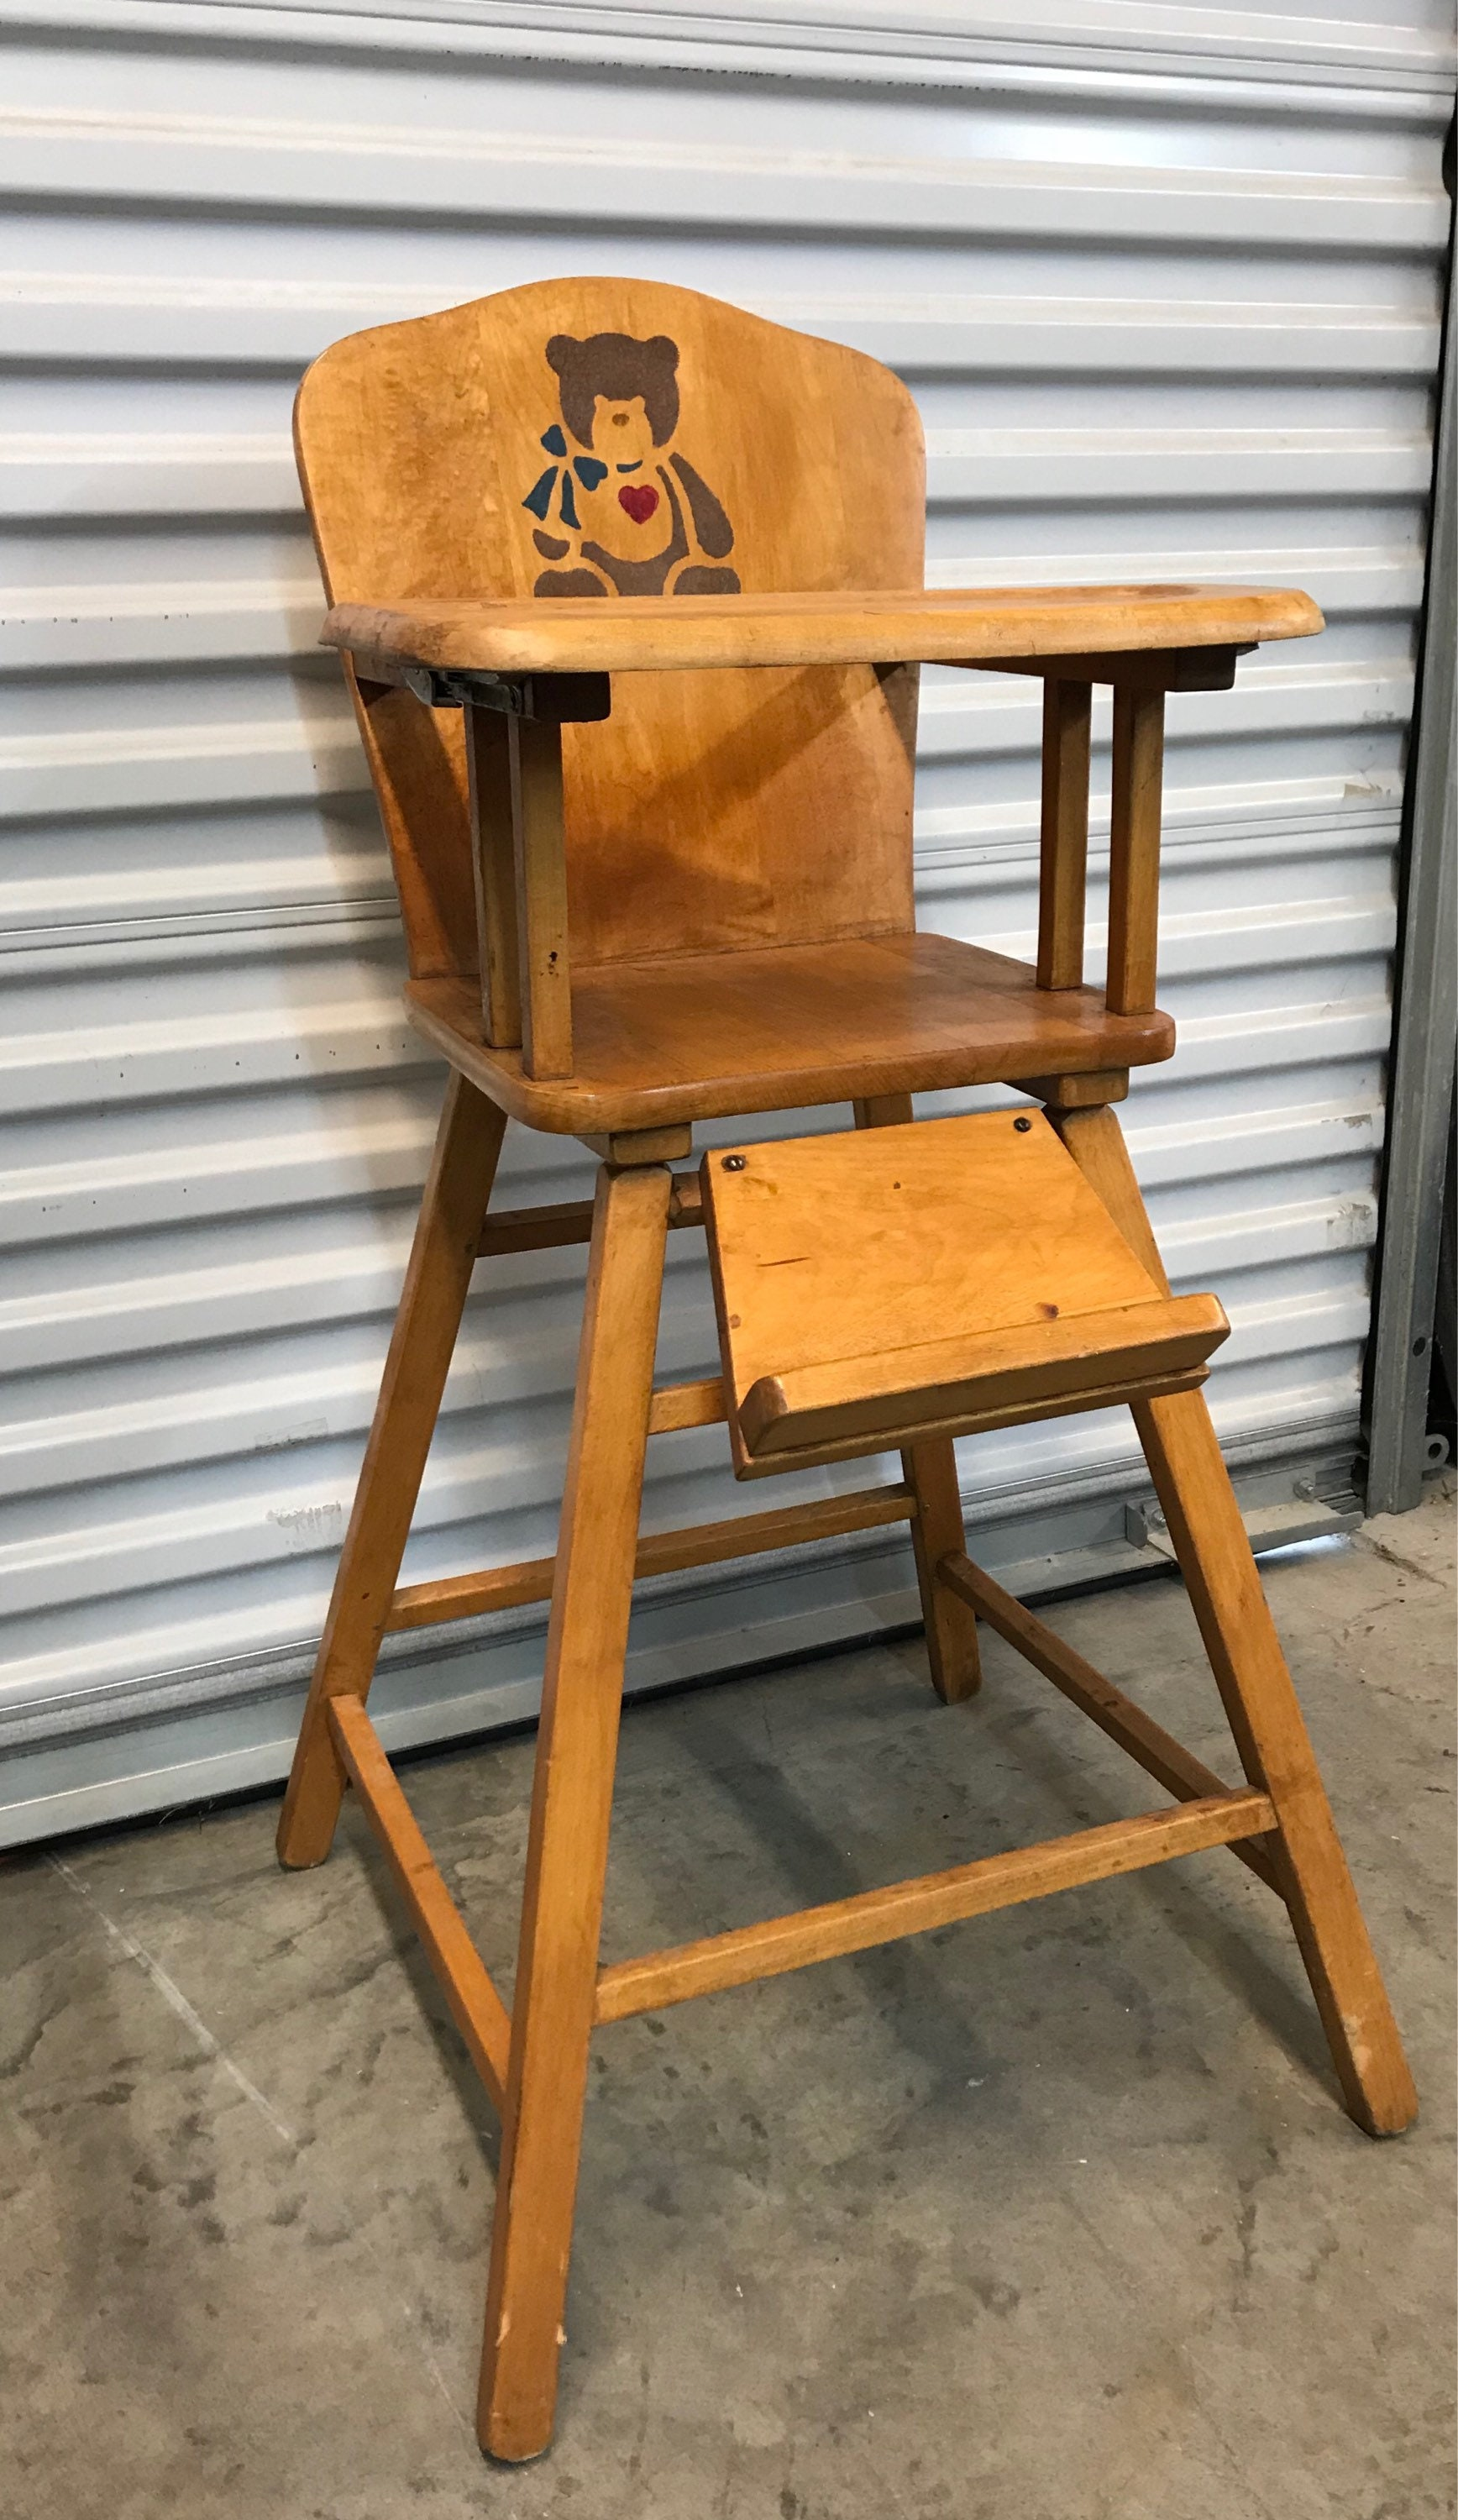 Vintage Wooden High Chairs Available for Custom Finish